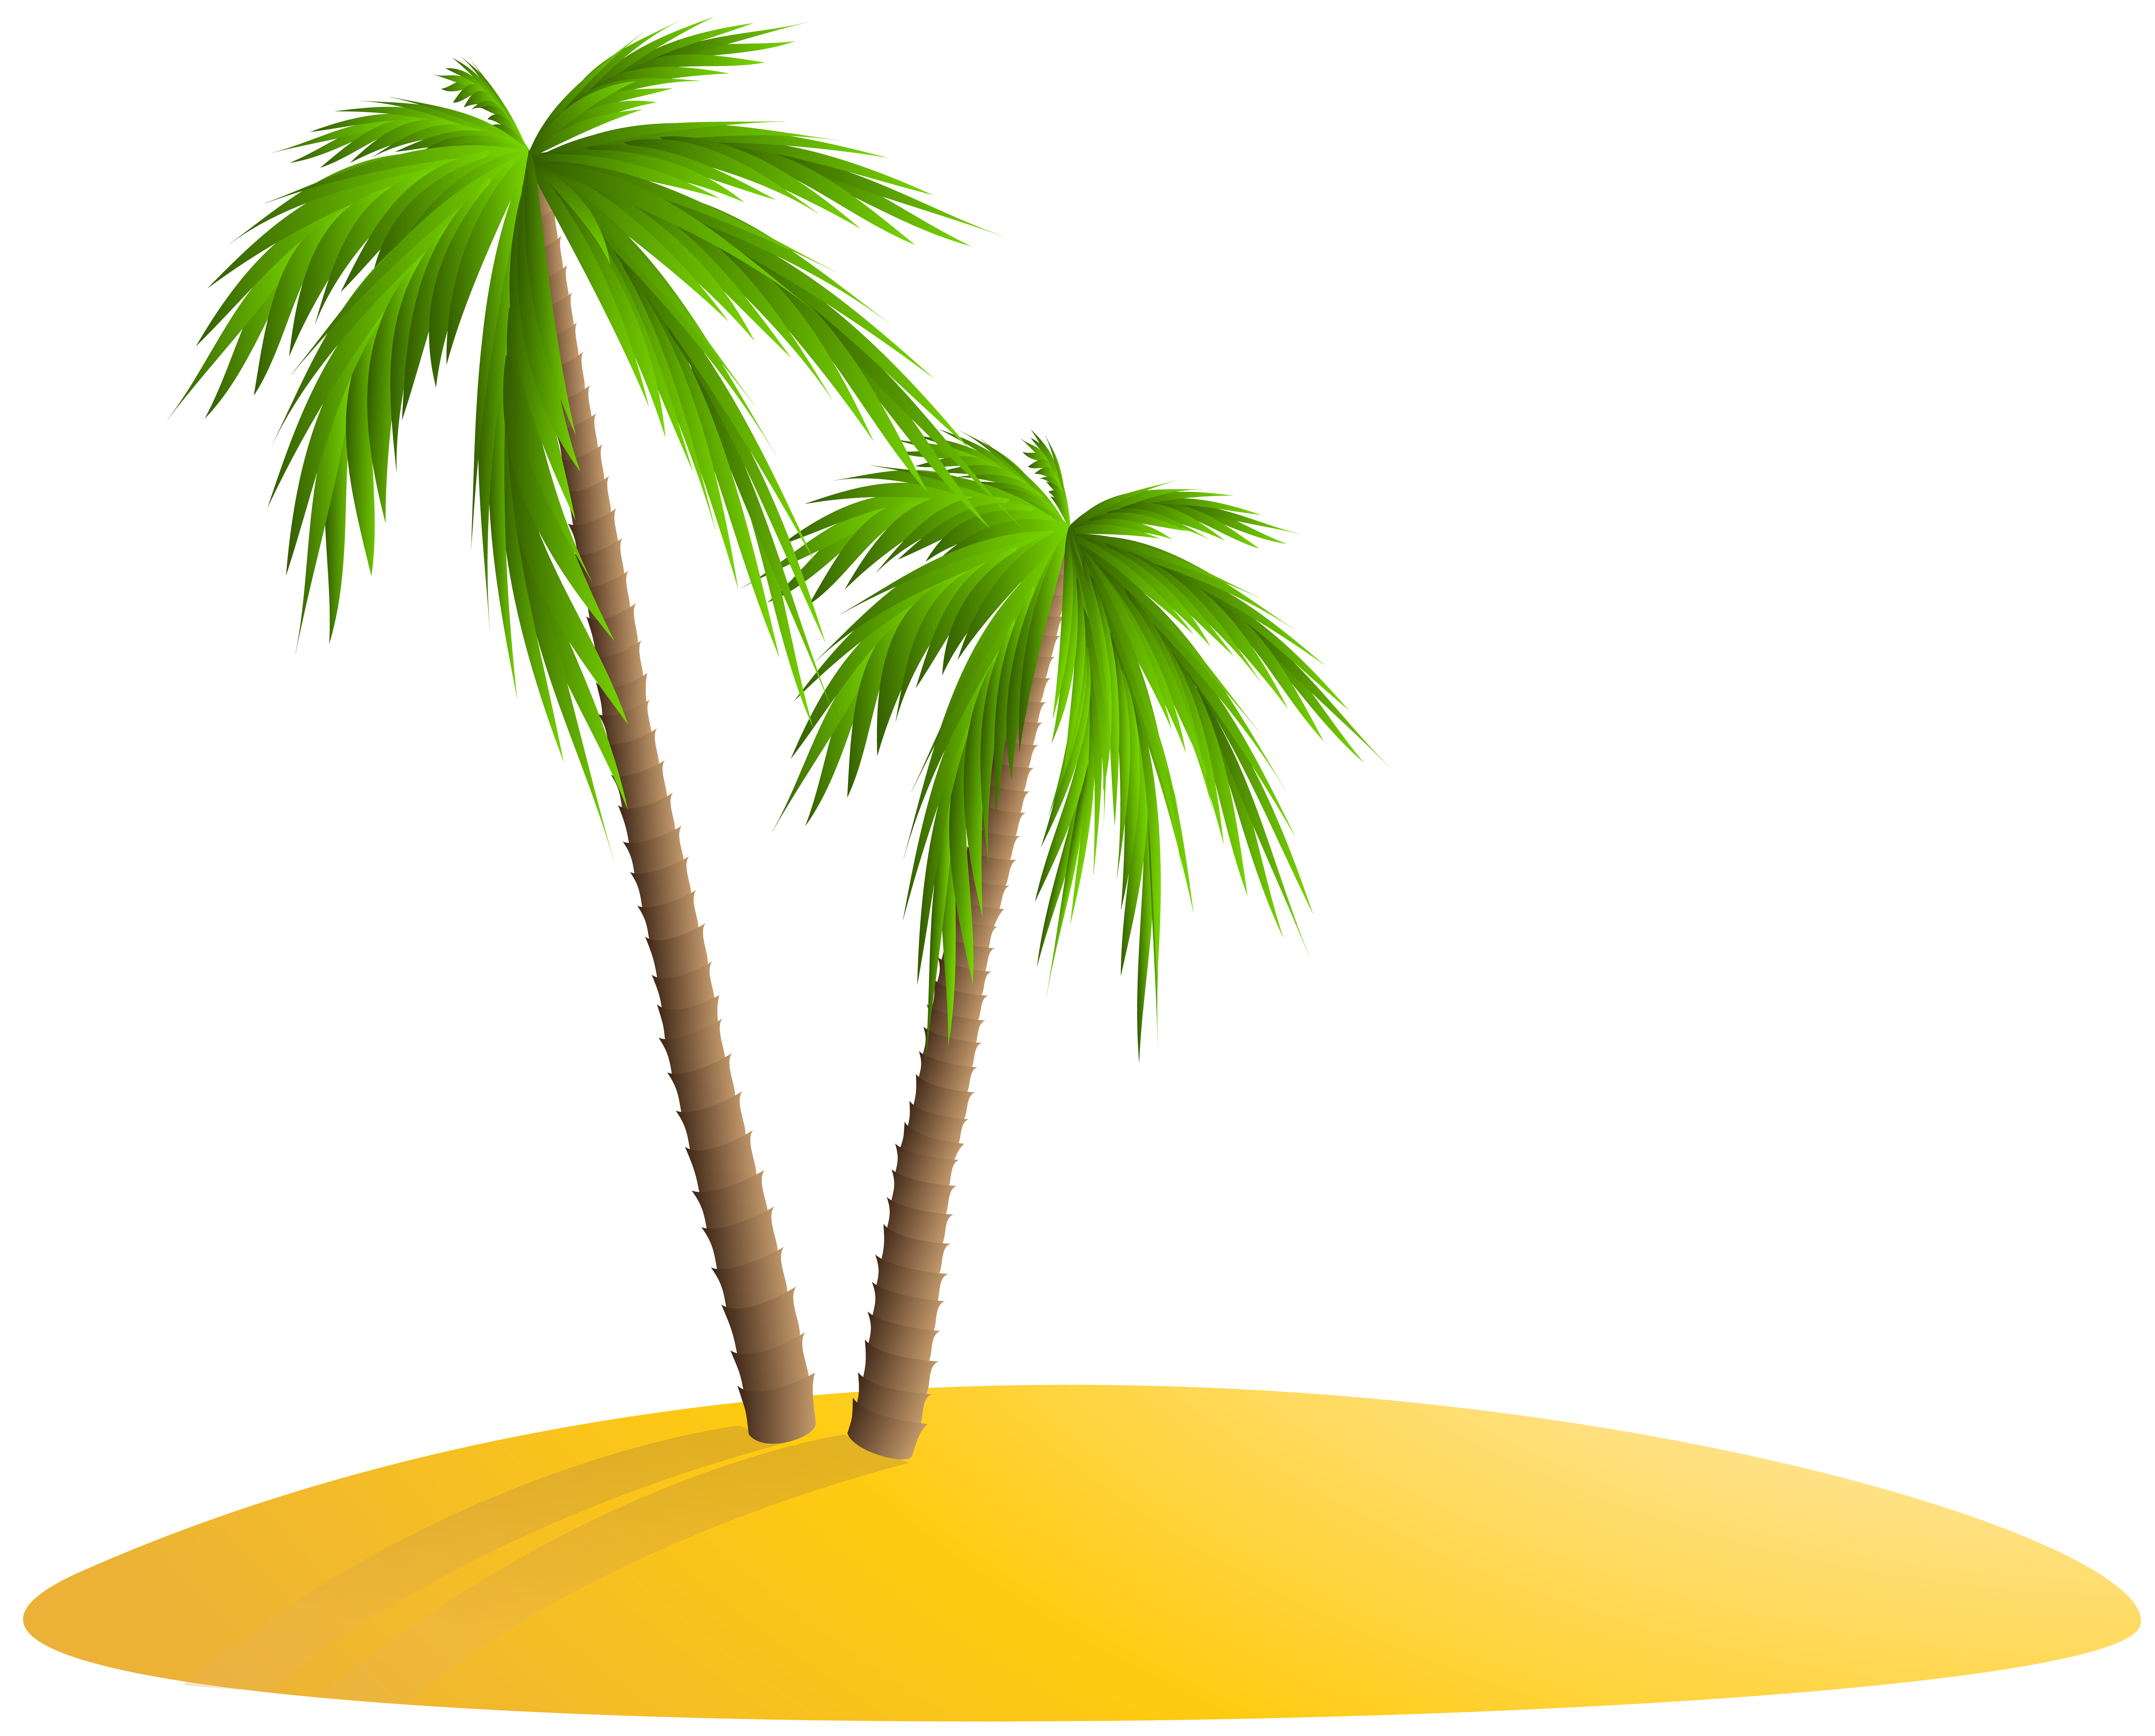 Island palm tree clipart jpg royalty free download Palm Island PNG Clip Art Image | Gallery Yopriceville - High ... jpg royalty free download